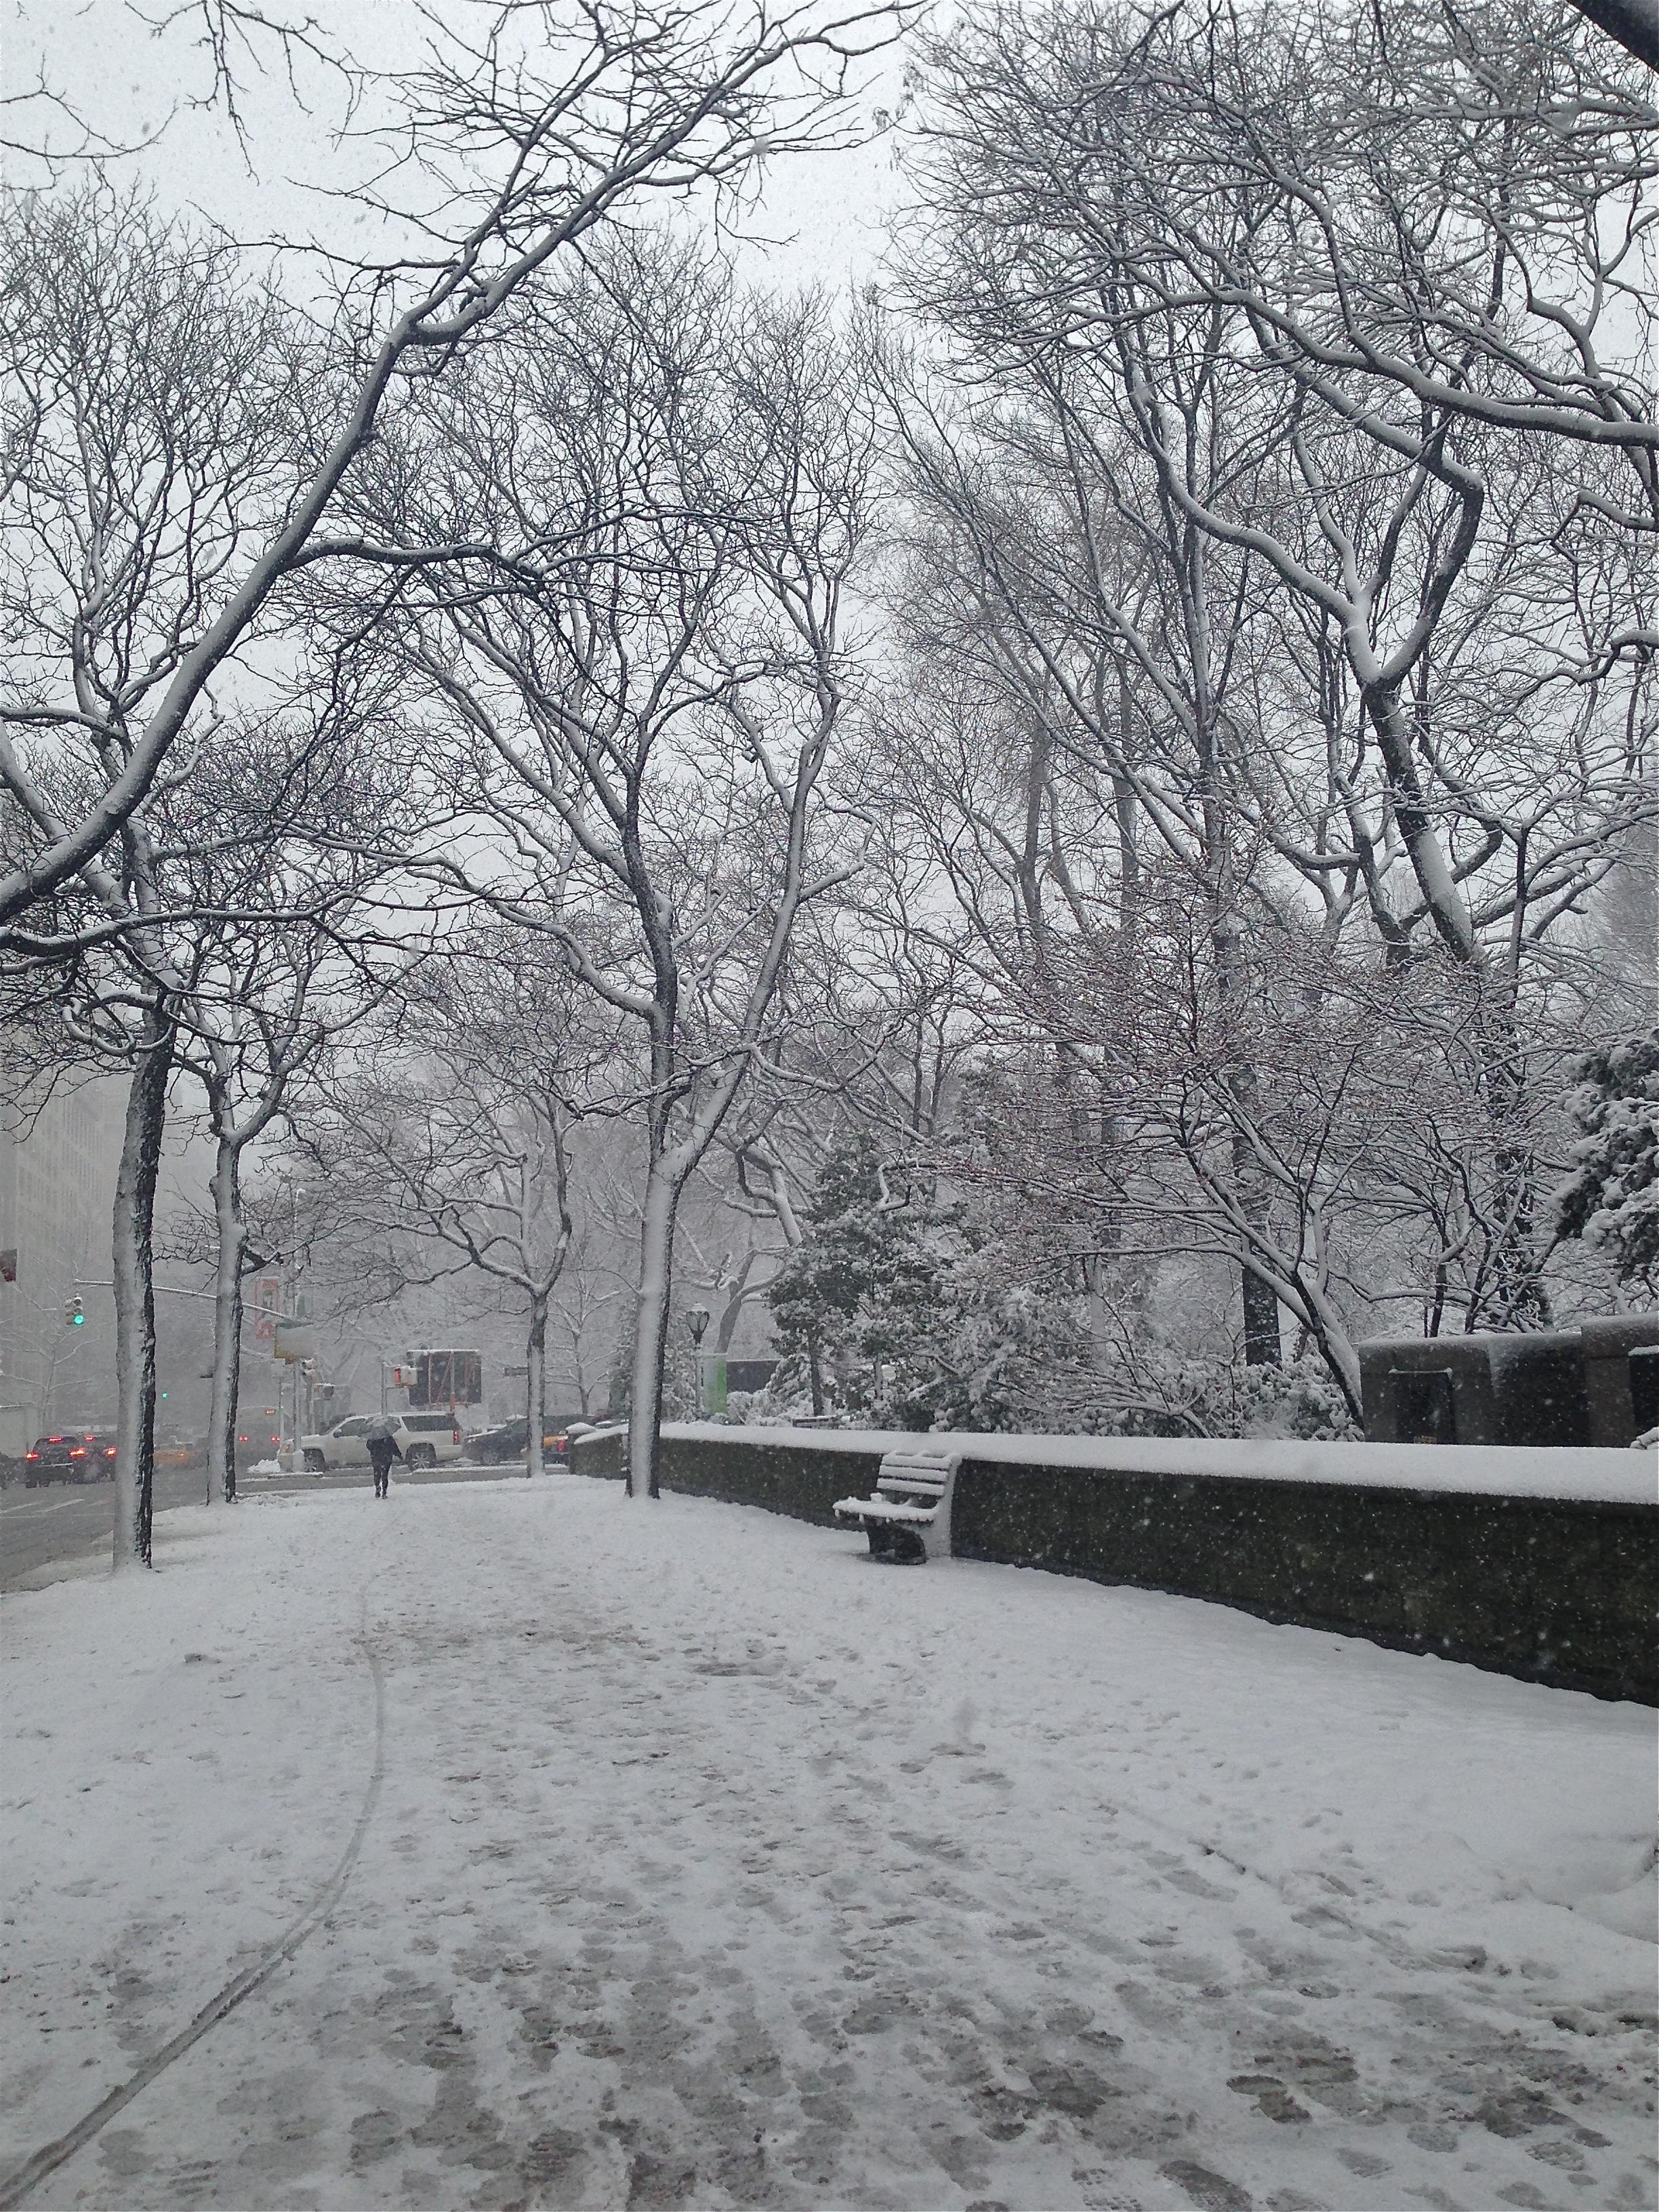 {snowy Fifth Avenue}